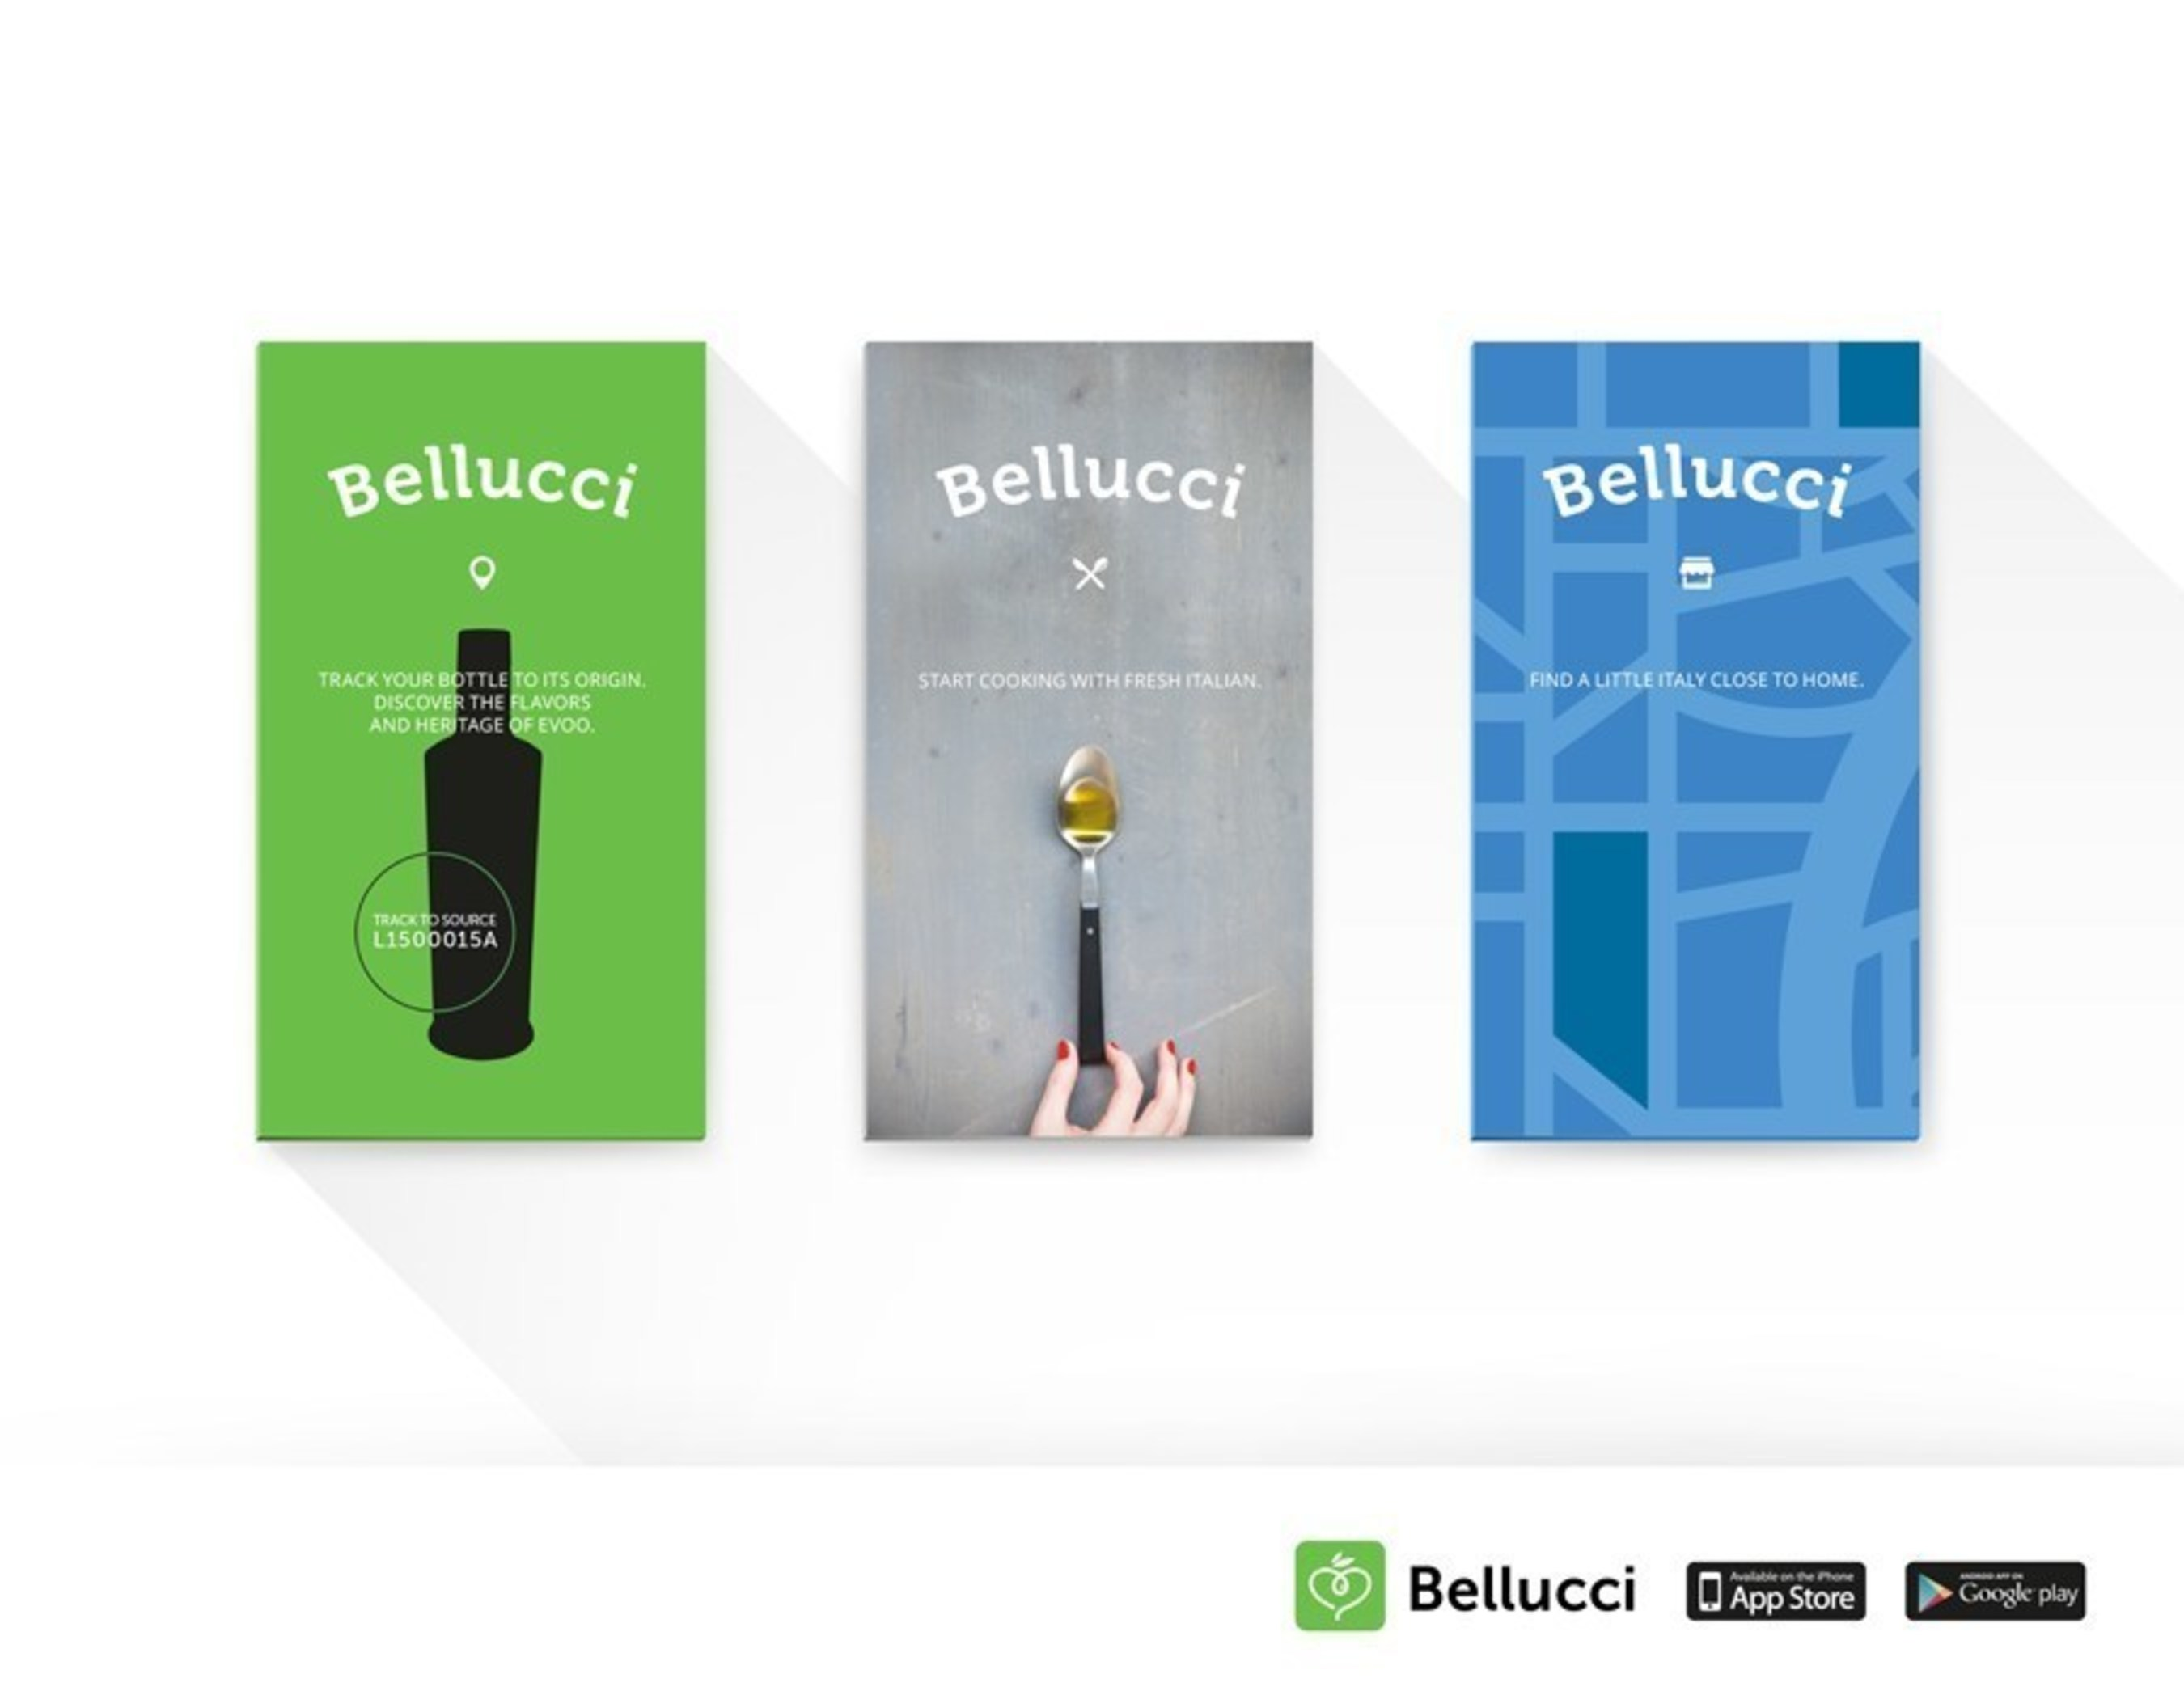 The Belucci App allows consumers to utilize innovative trace-to-source technology to identify where their bottle of Bellucci extra virgin olive oil (EVOO) comes from. The app also allows users to explore new ways of using EVOO with a recipe section. You will also be able to test your palate against the professionals in a EVOO taste test. Download the Bellucci App on Apple iOS or Android for free.